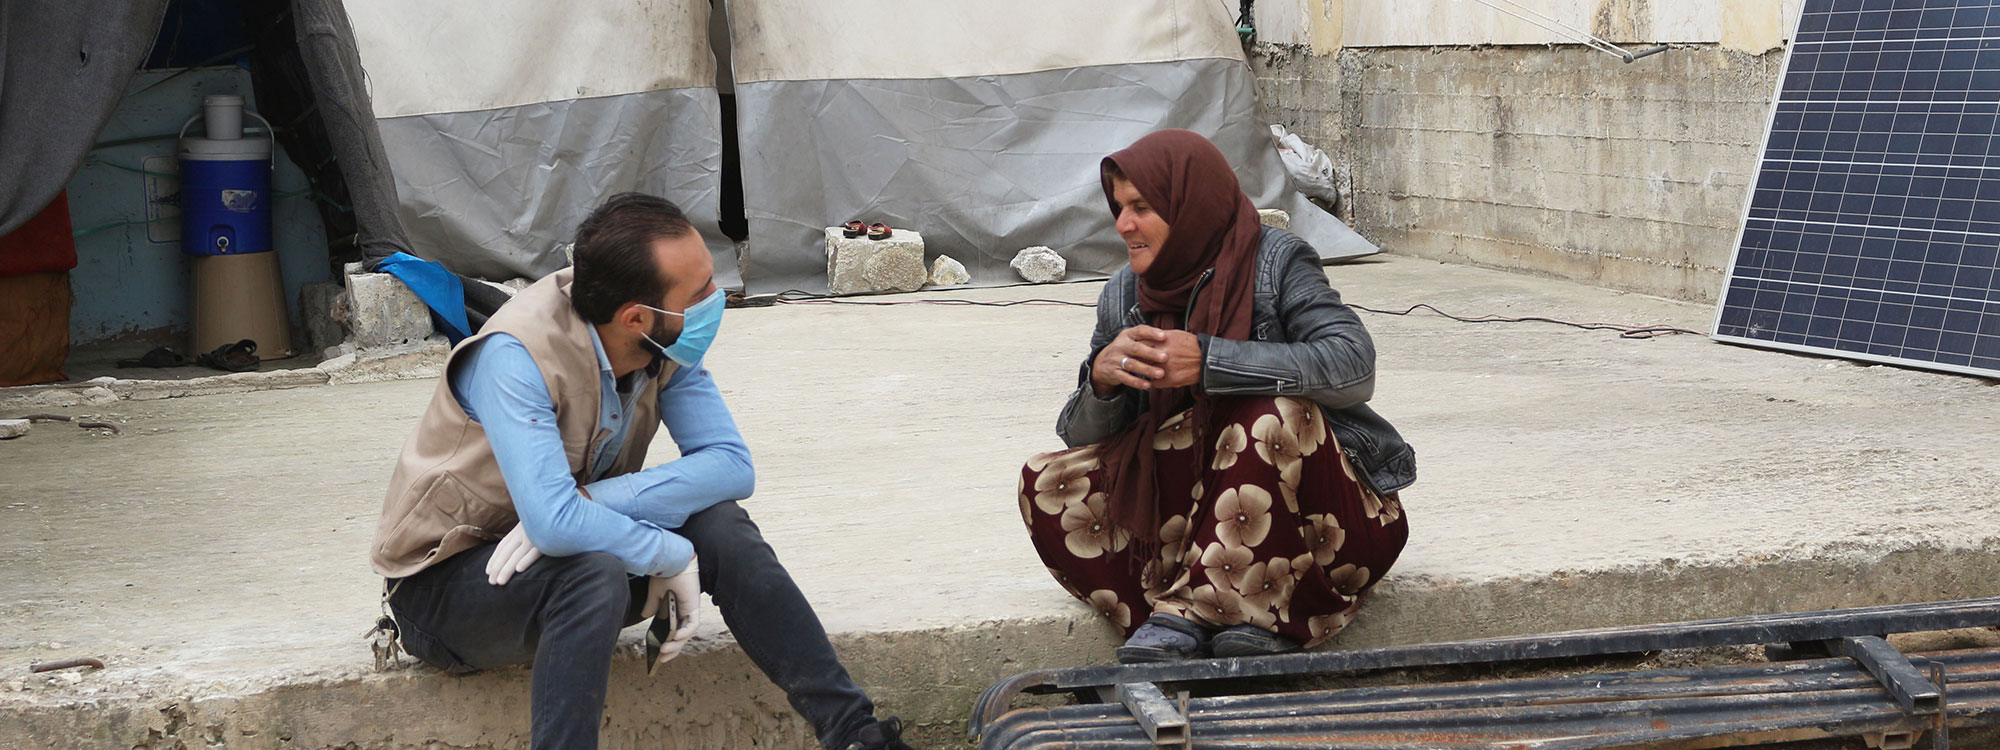 A ReliefAid worker wearing face mask and gloves talks to a woman during assessments at a camp in Idlib, Syria